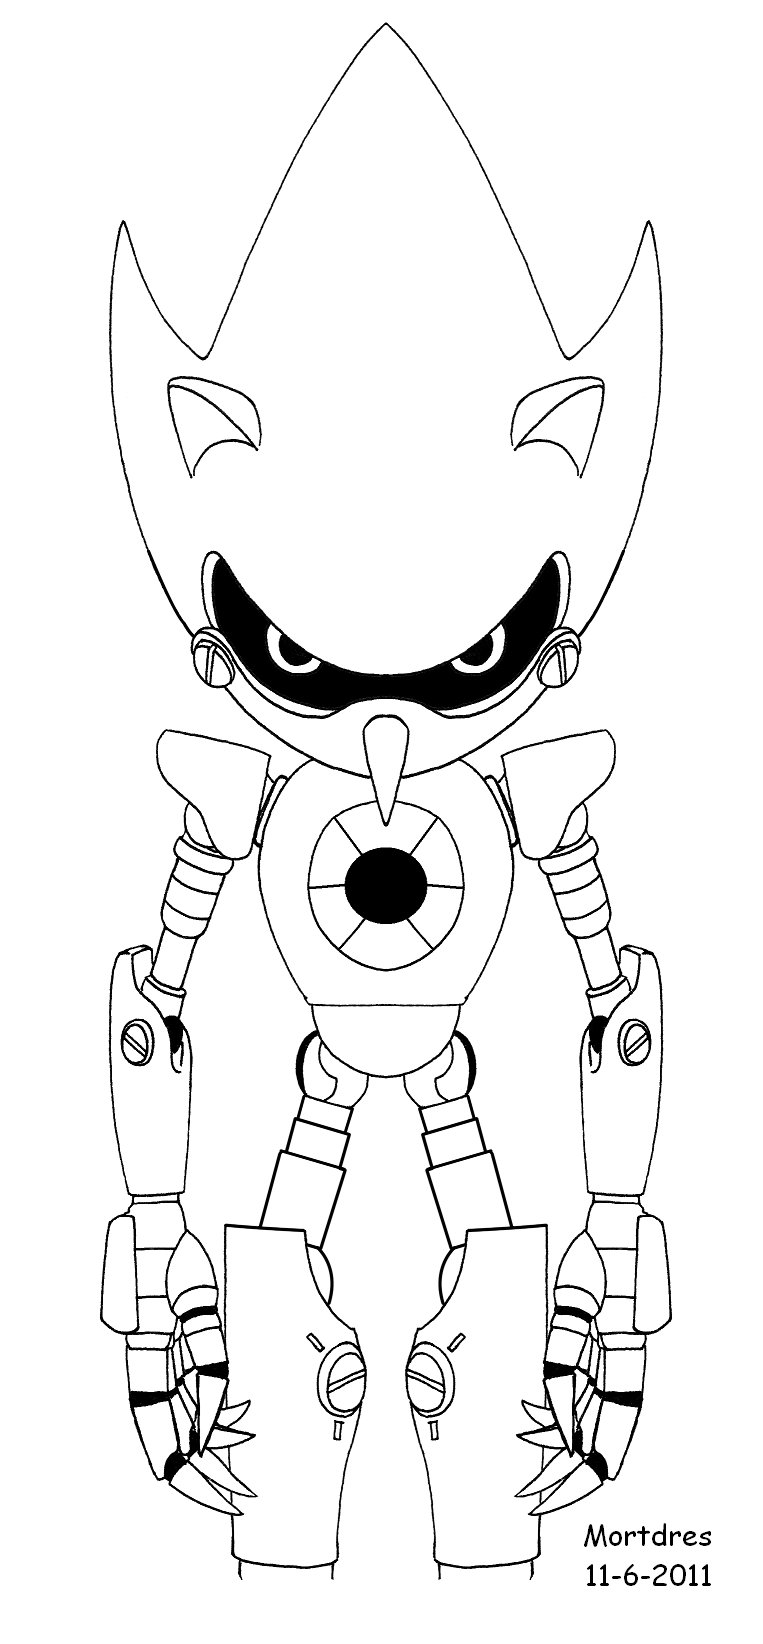 Metal sonic stand by mortdres on deviantart for Metal sonic coloring pages